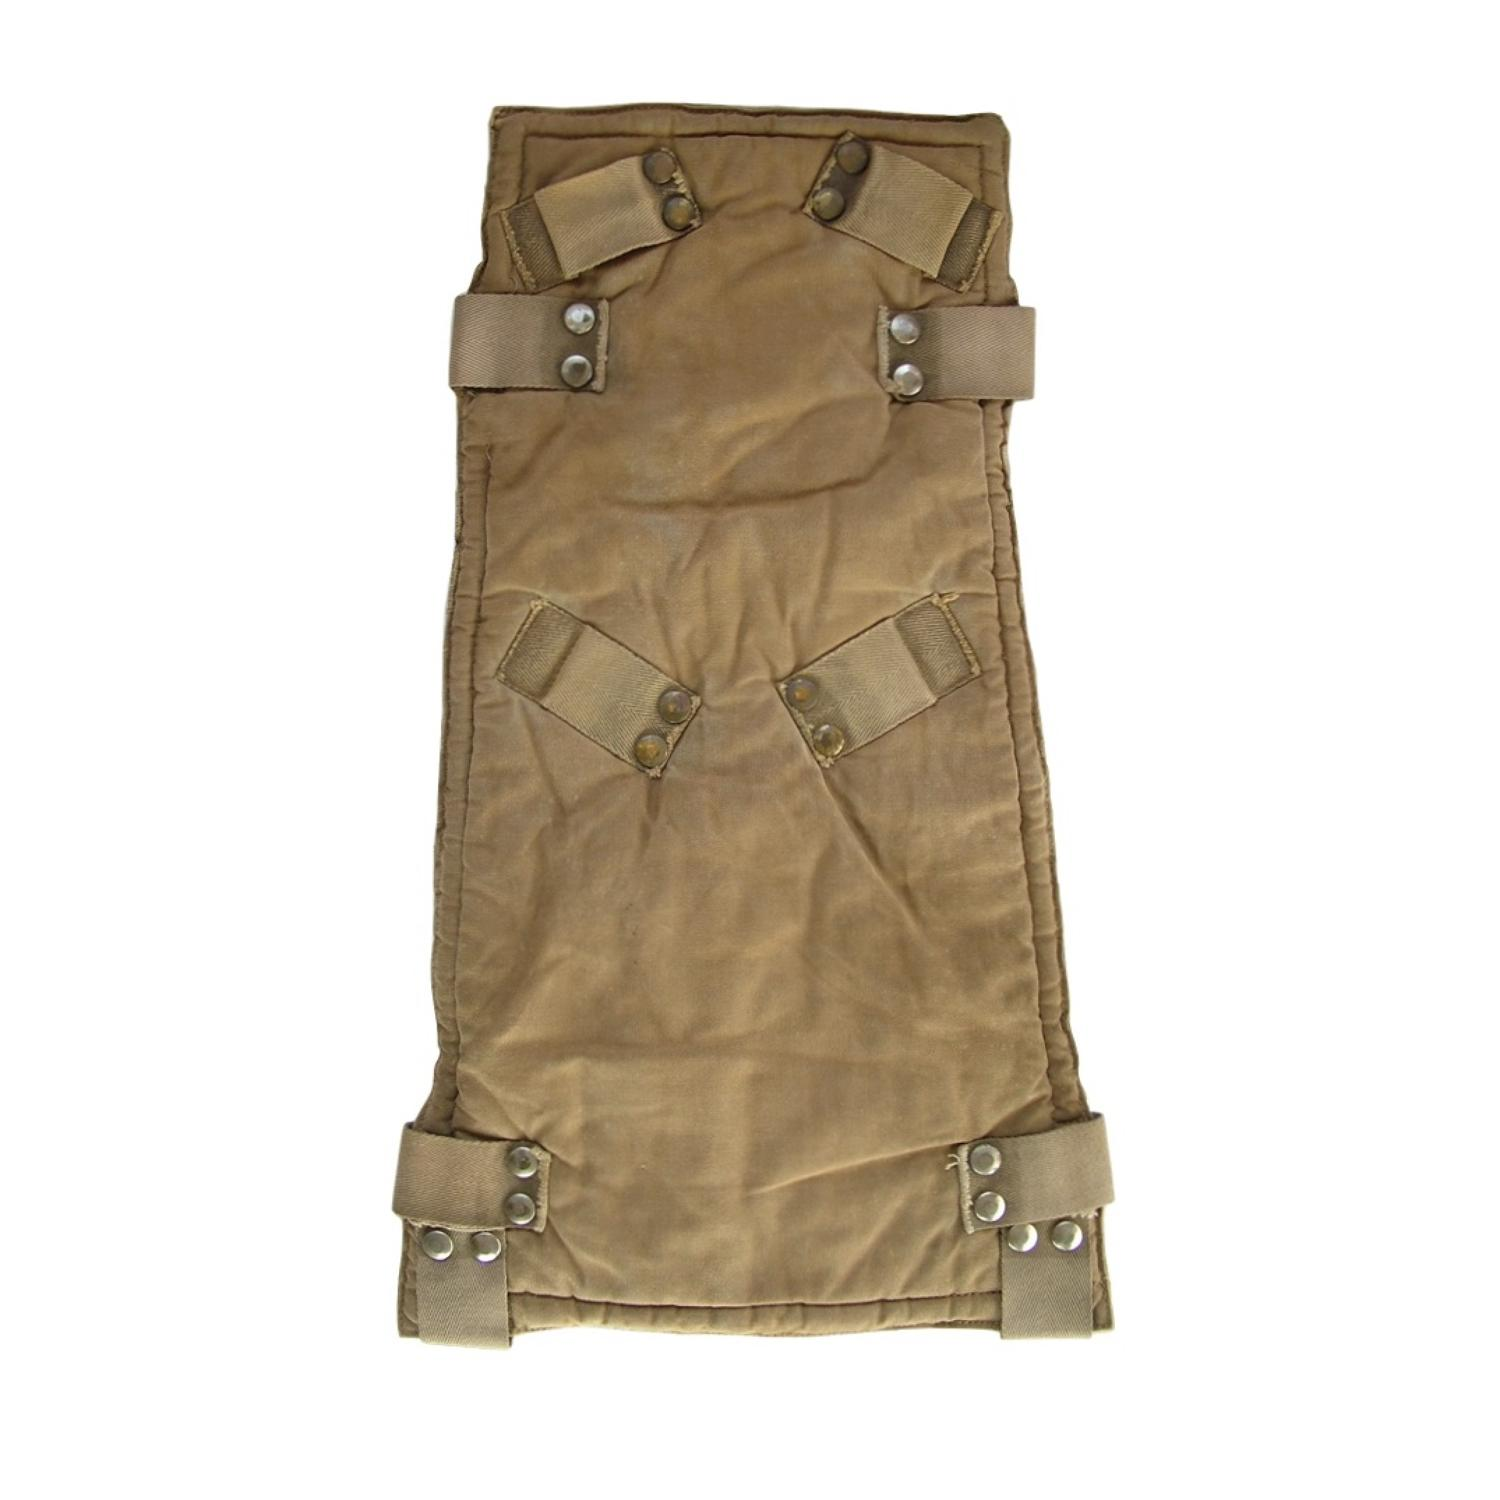 RAF parachute assembly backpad